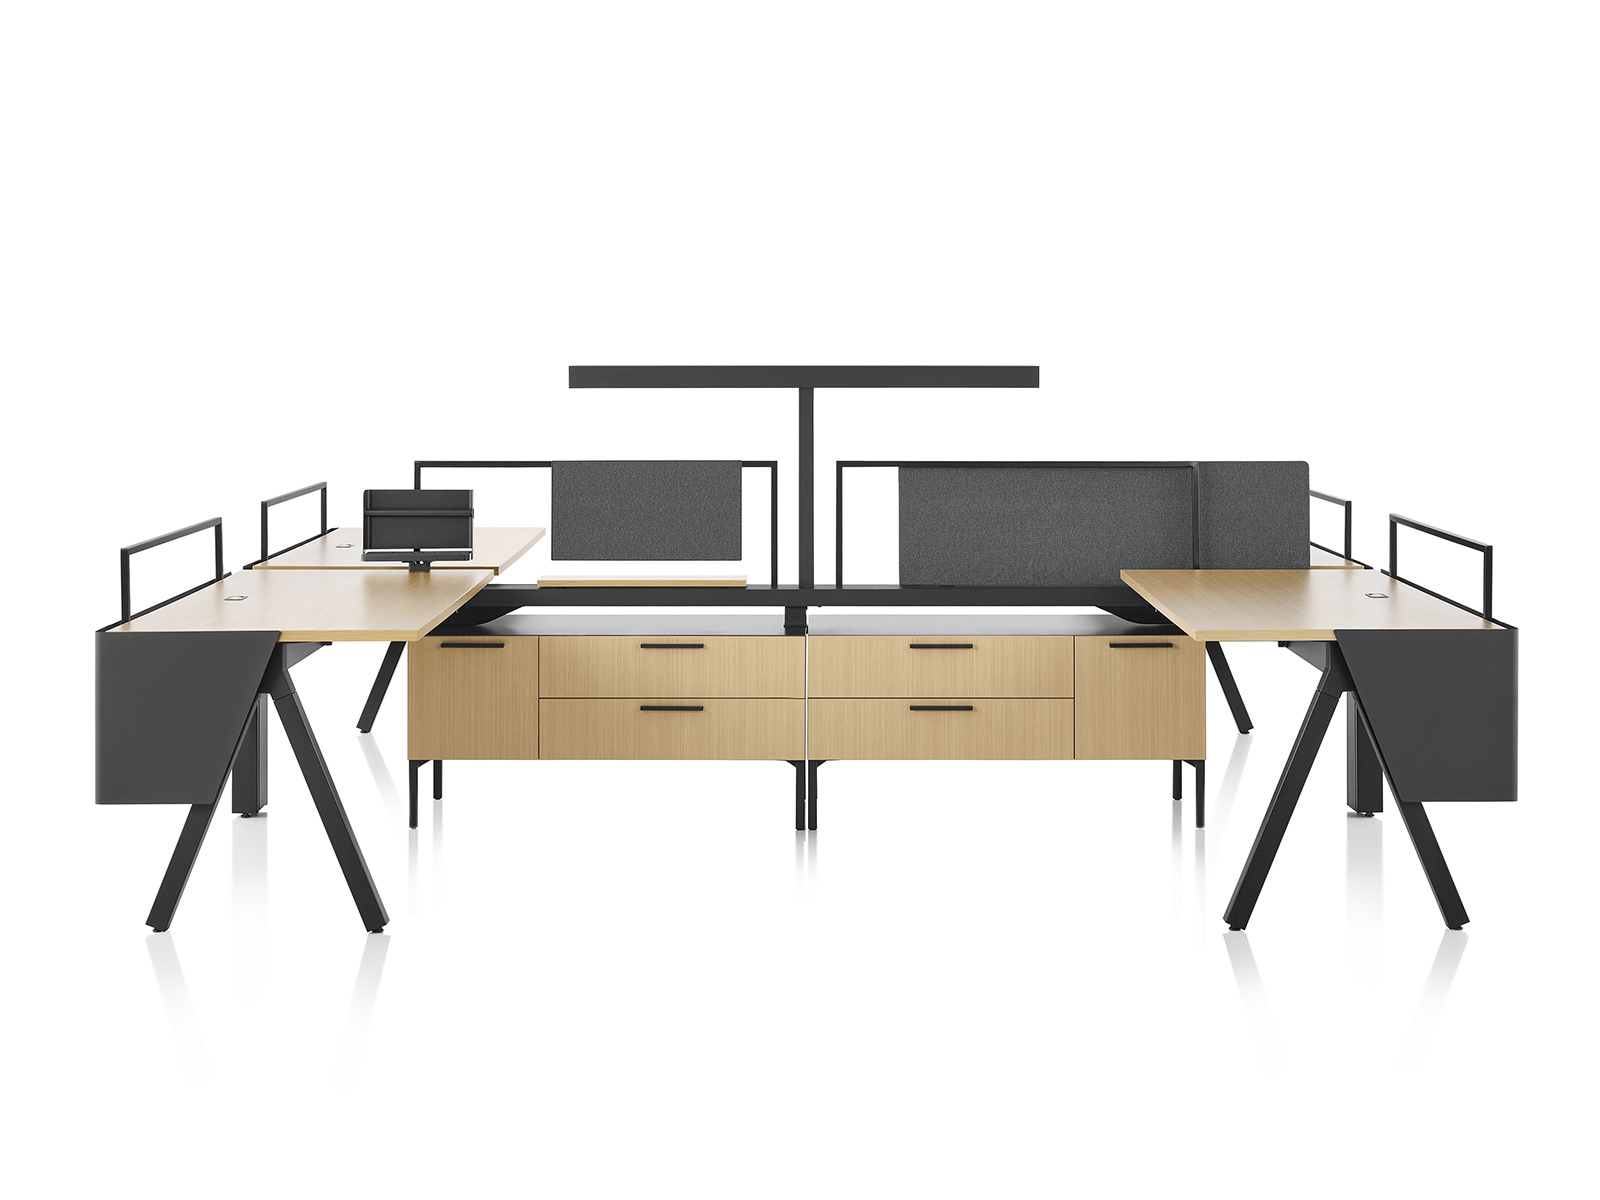 Brown and black Canvas Vista workstations with a-shaped legs, modesty screens and t-shaped light.